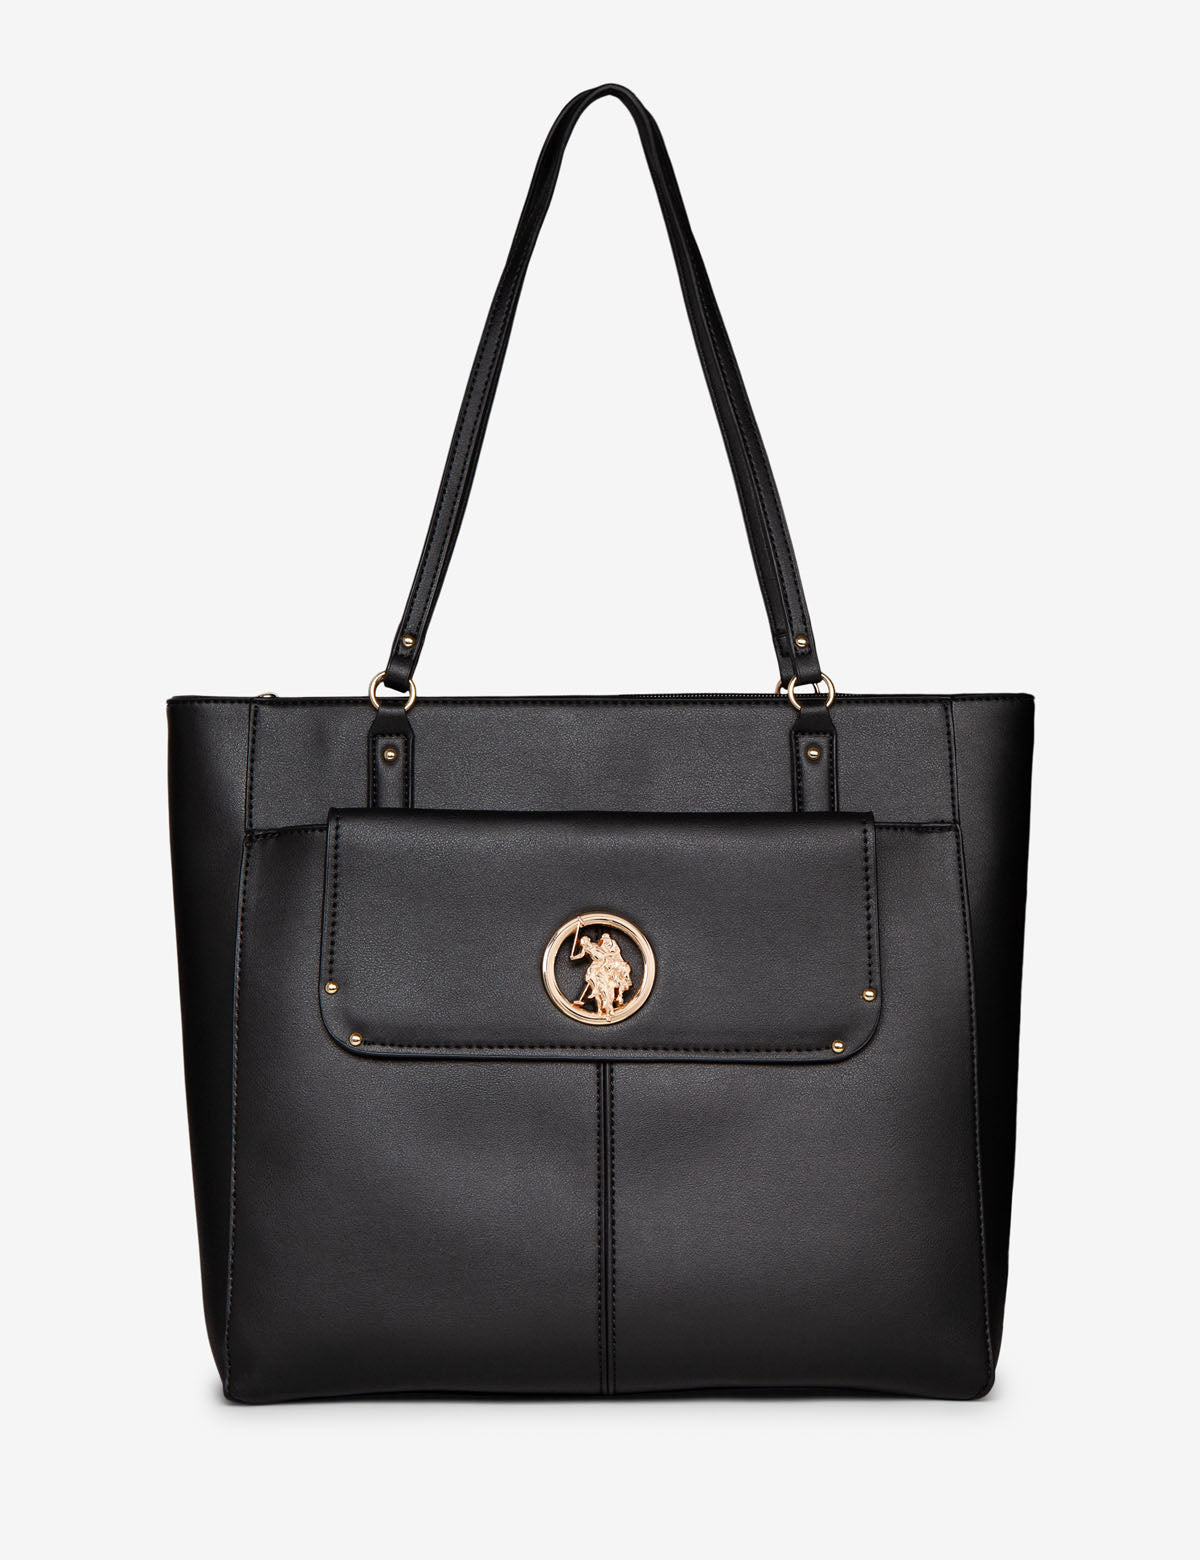 TOTE WITH LOGO MEDALLION